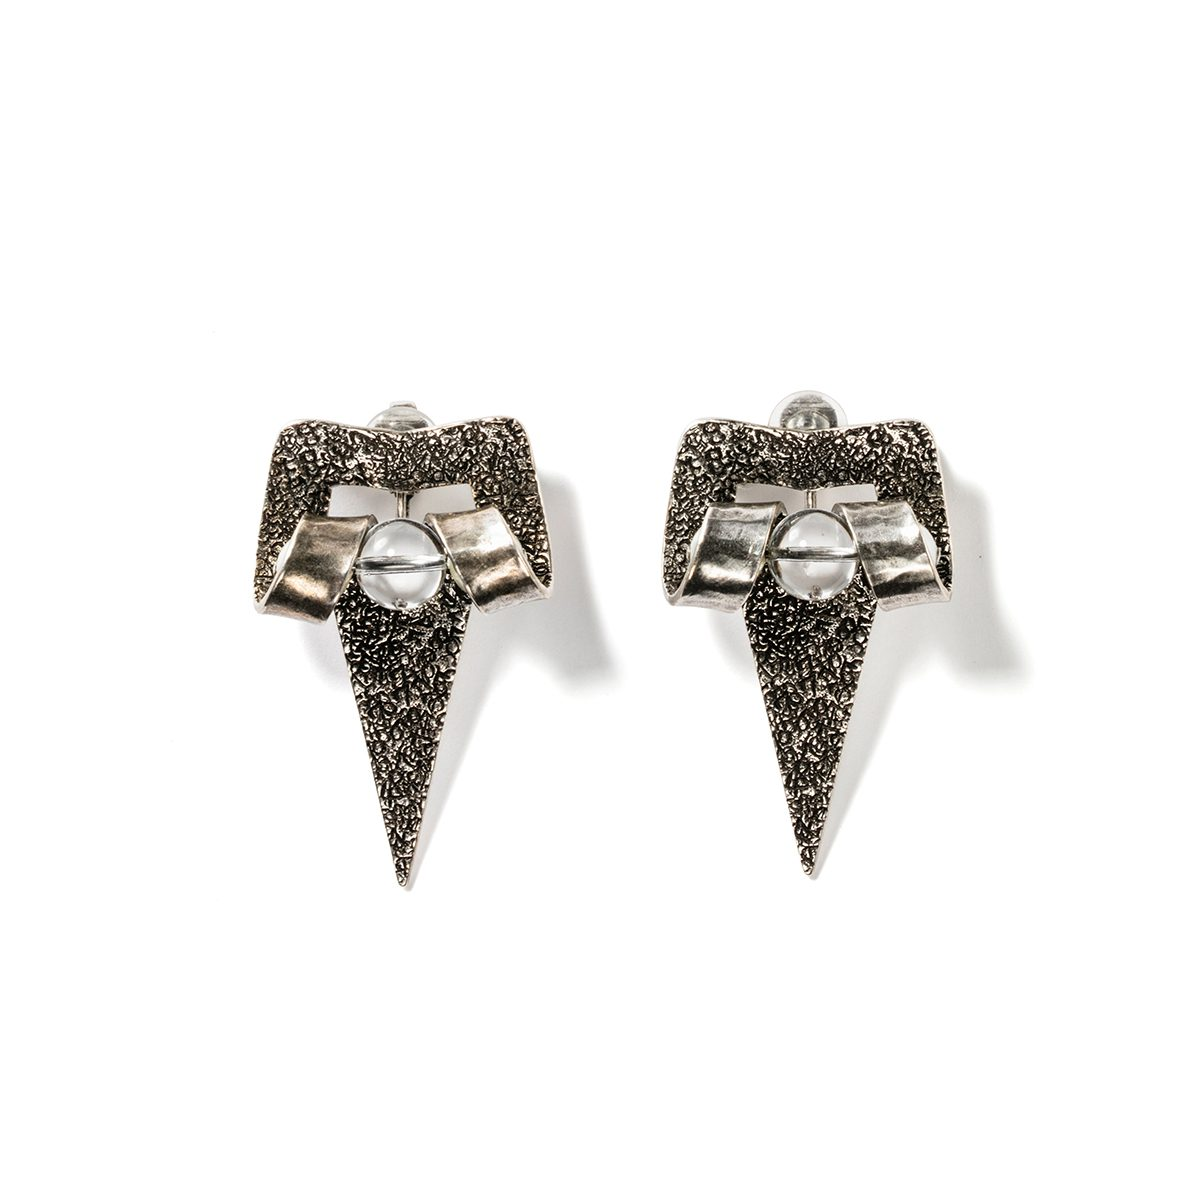 Delphine Charlotte Parmontier - VALENTINA|Earrings